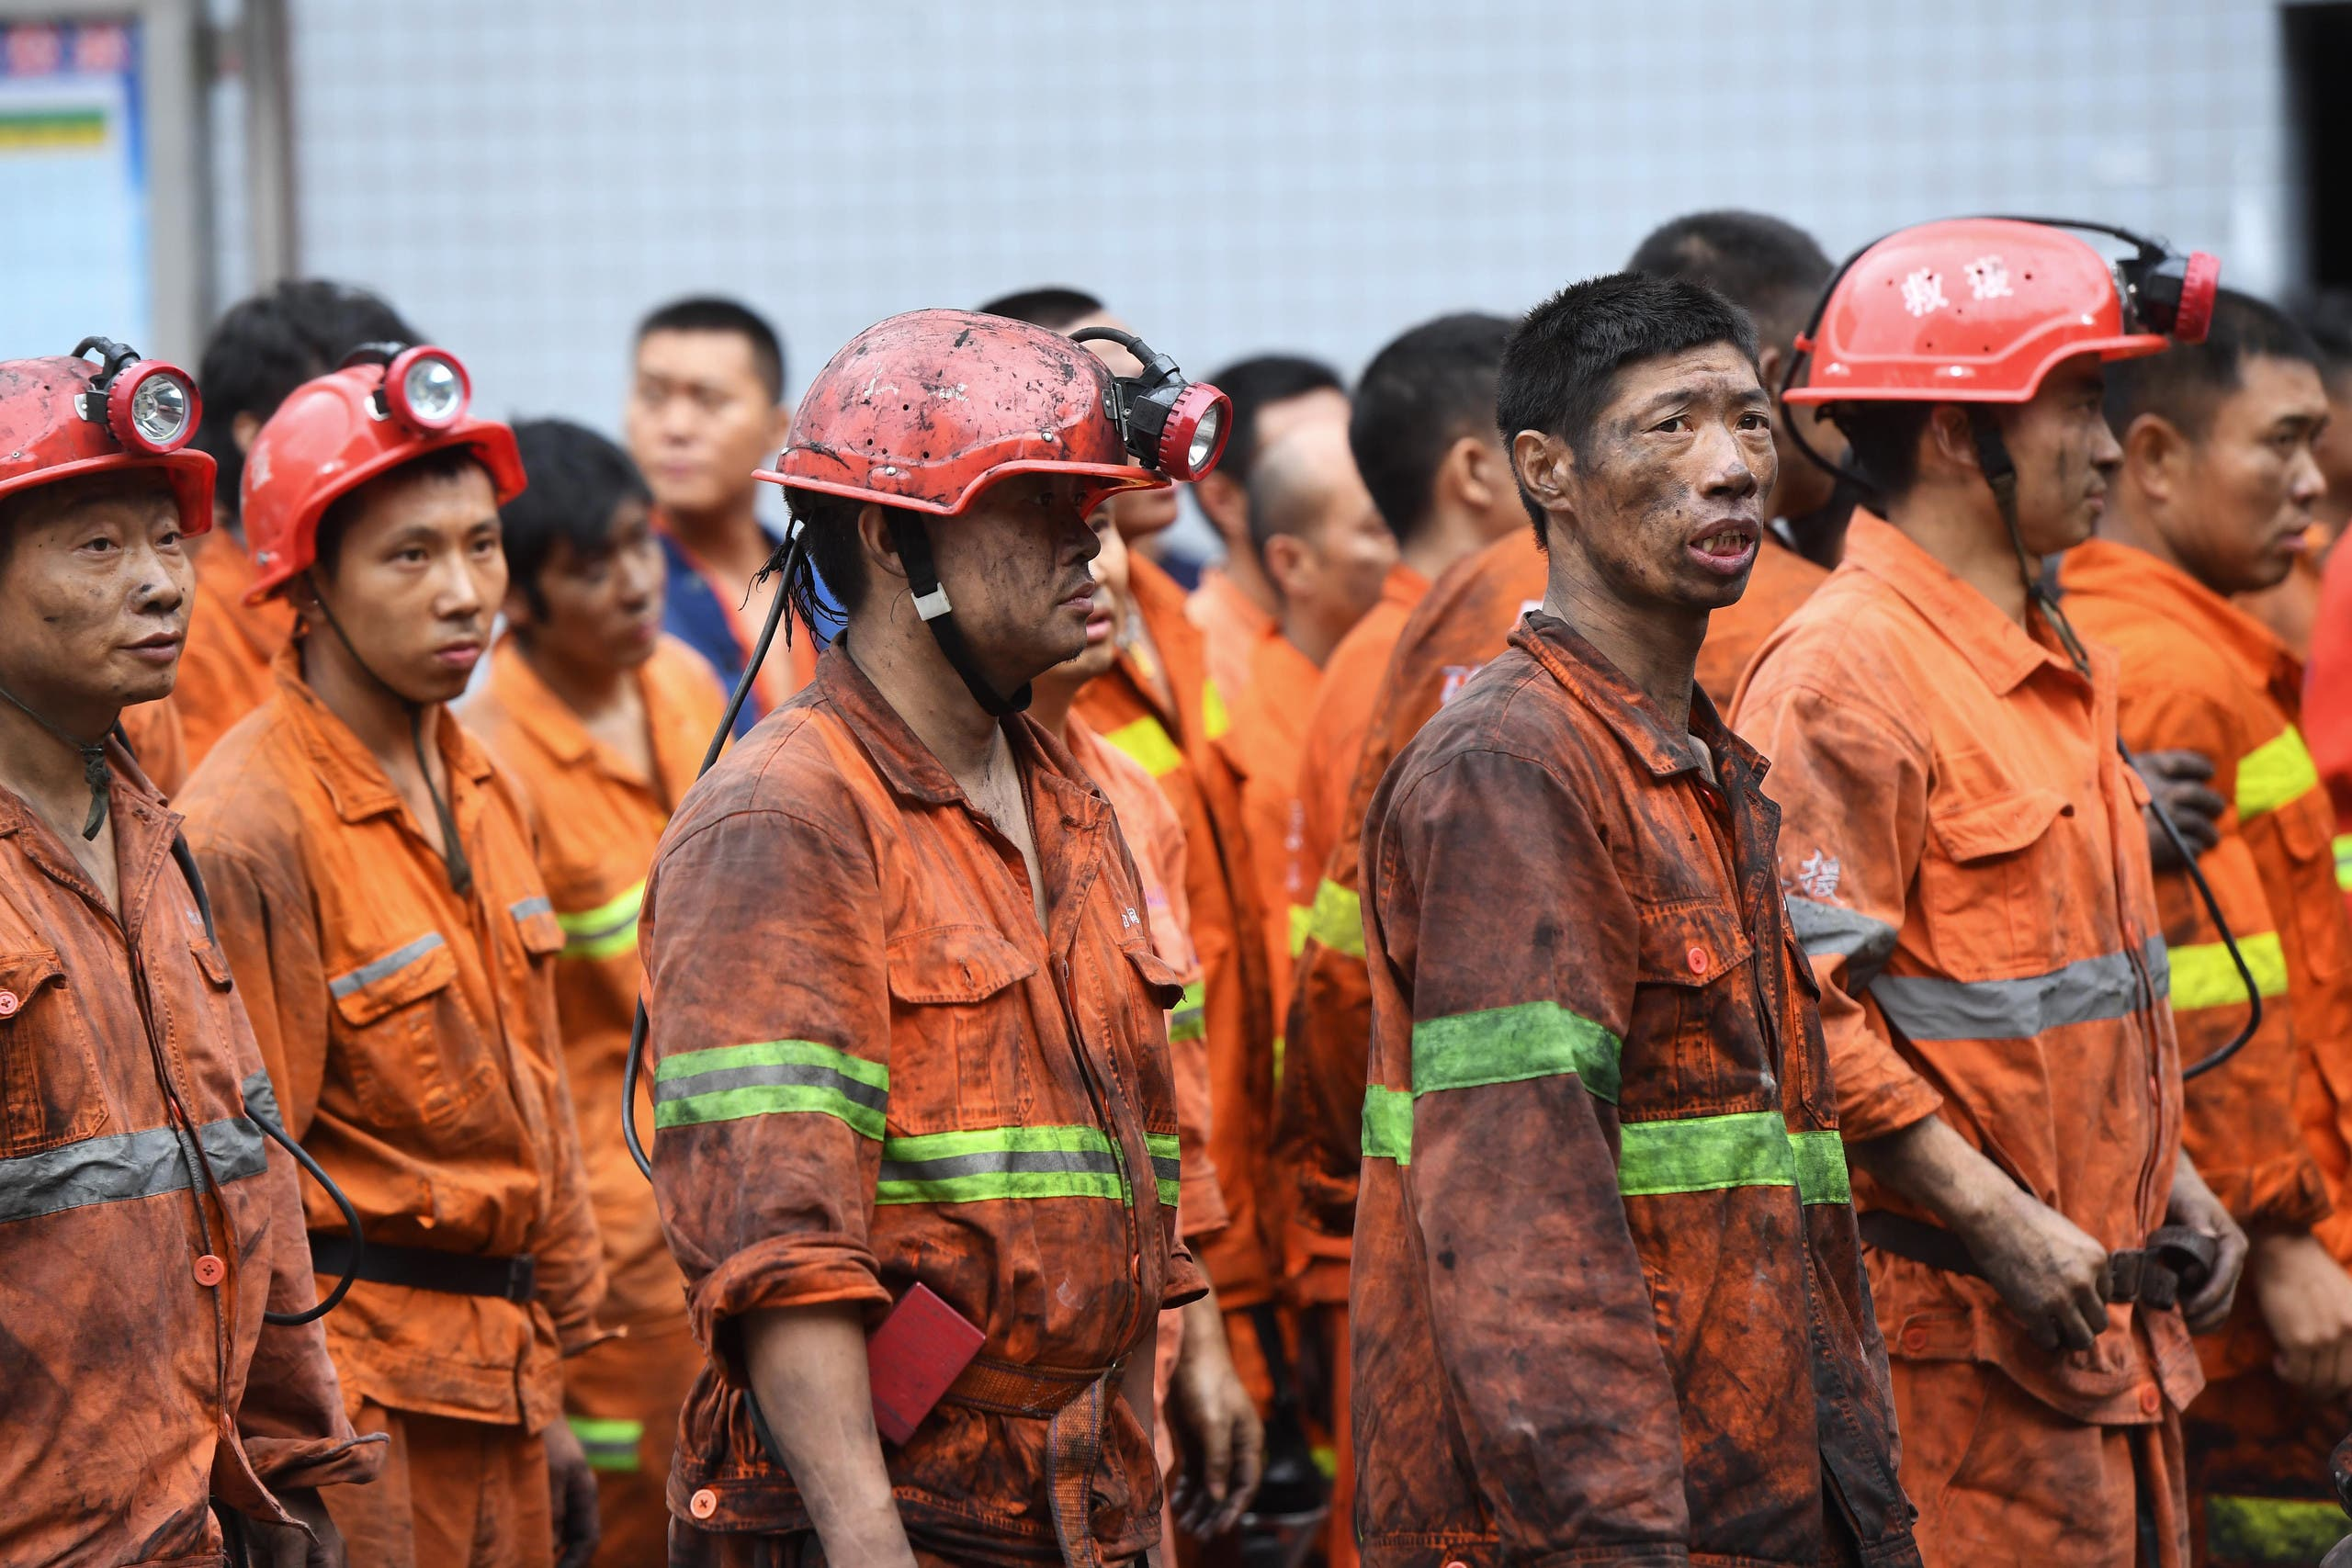 Mining accidents are common in China. In this file photo, rescuers wait outside the Songzao Coal Mine near Chongqing, in southwest China on September 27, 2020. (File photo: AFP)